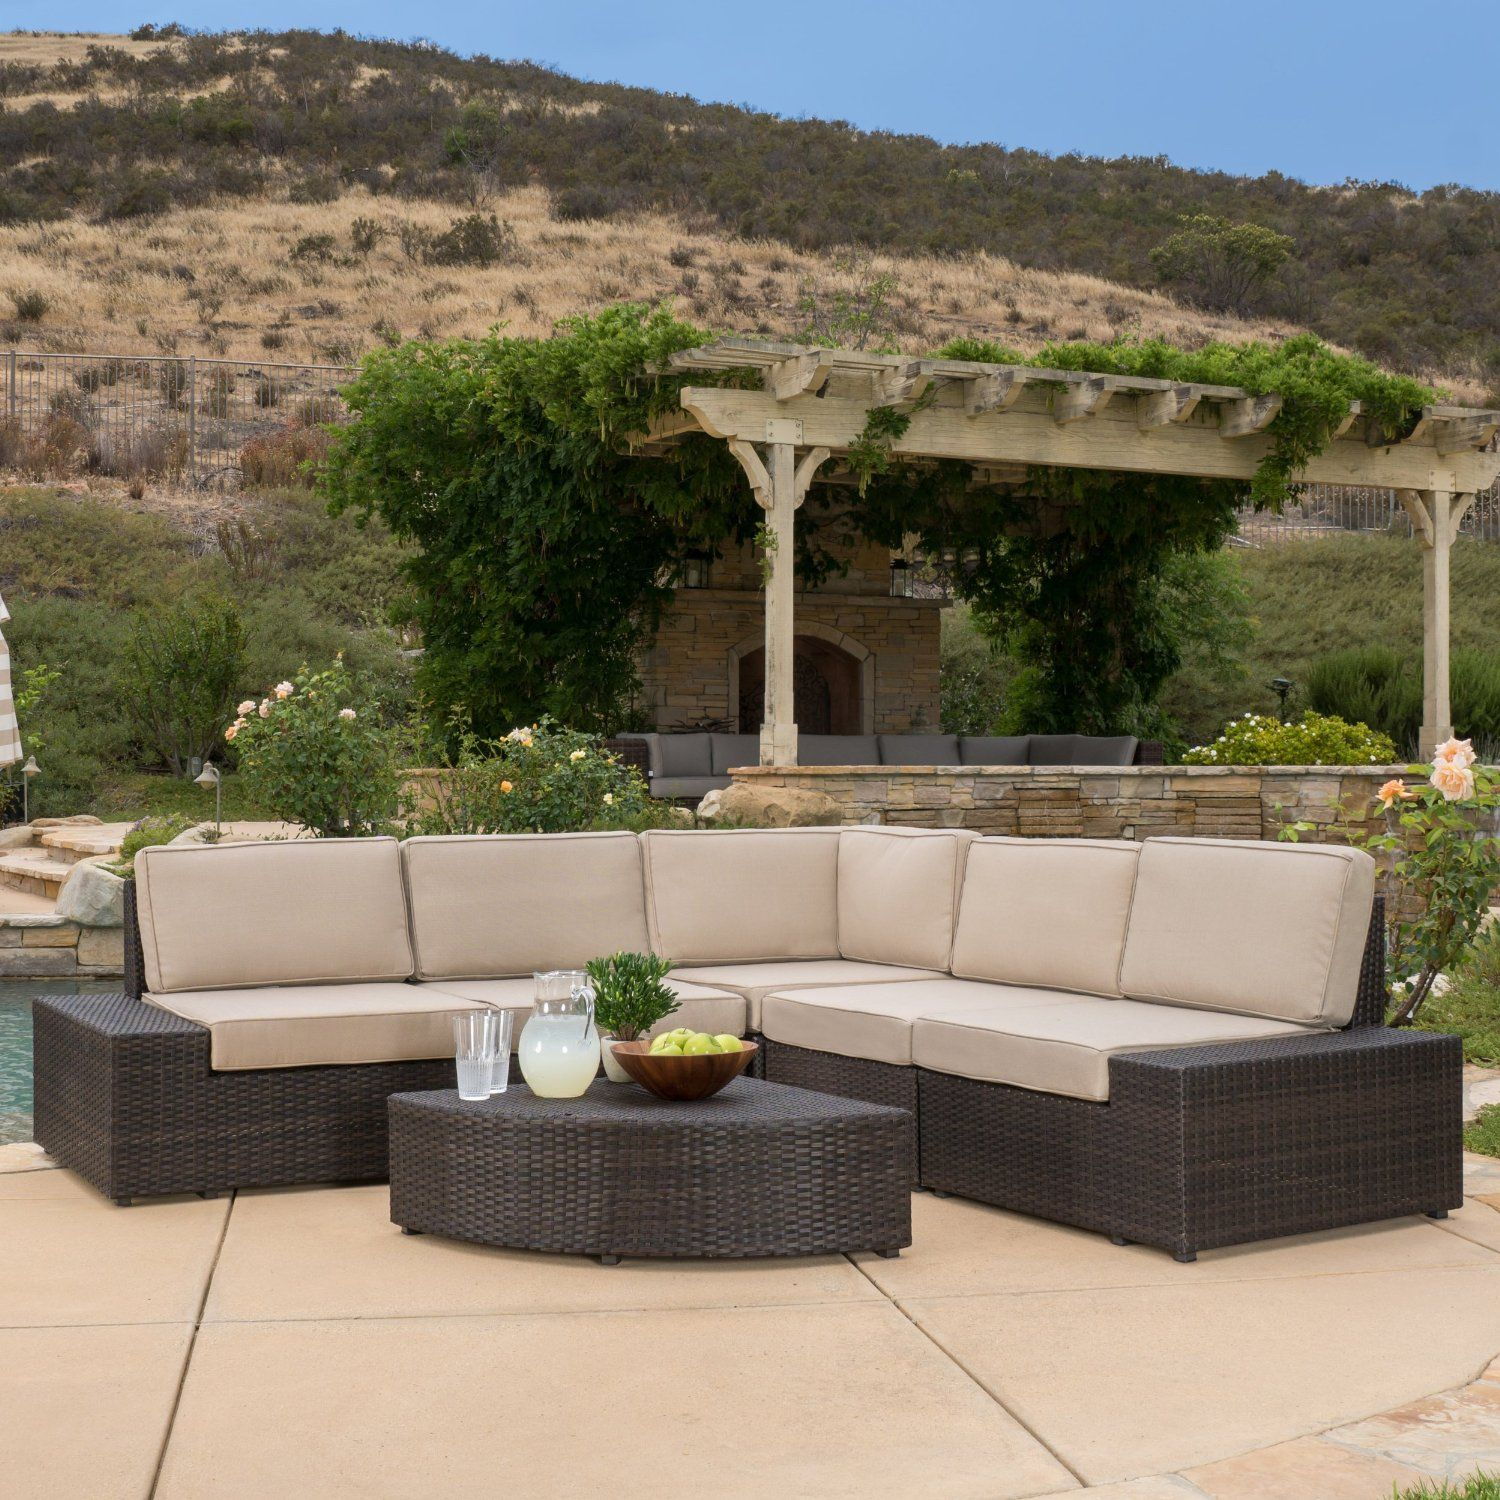 Reddington outdoor brown wicker sectional for Wicker outdoor furniture